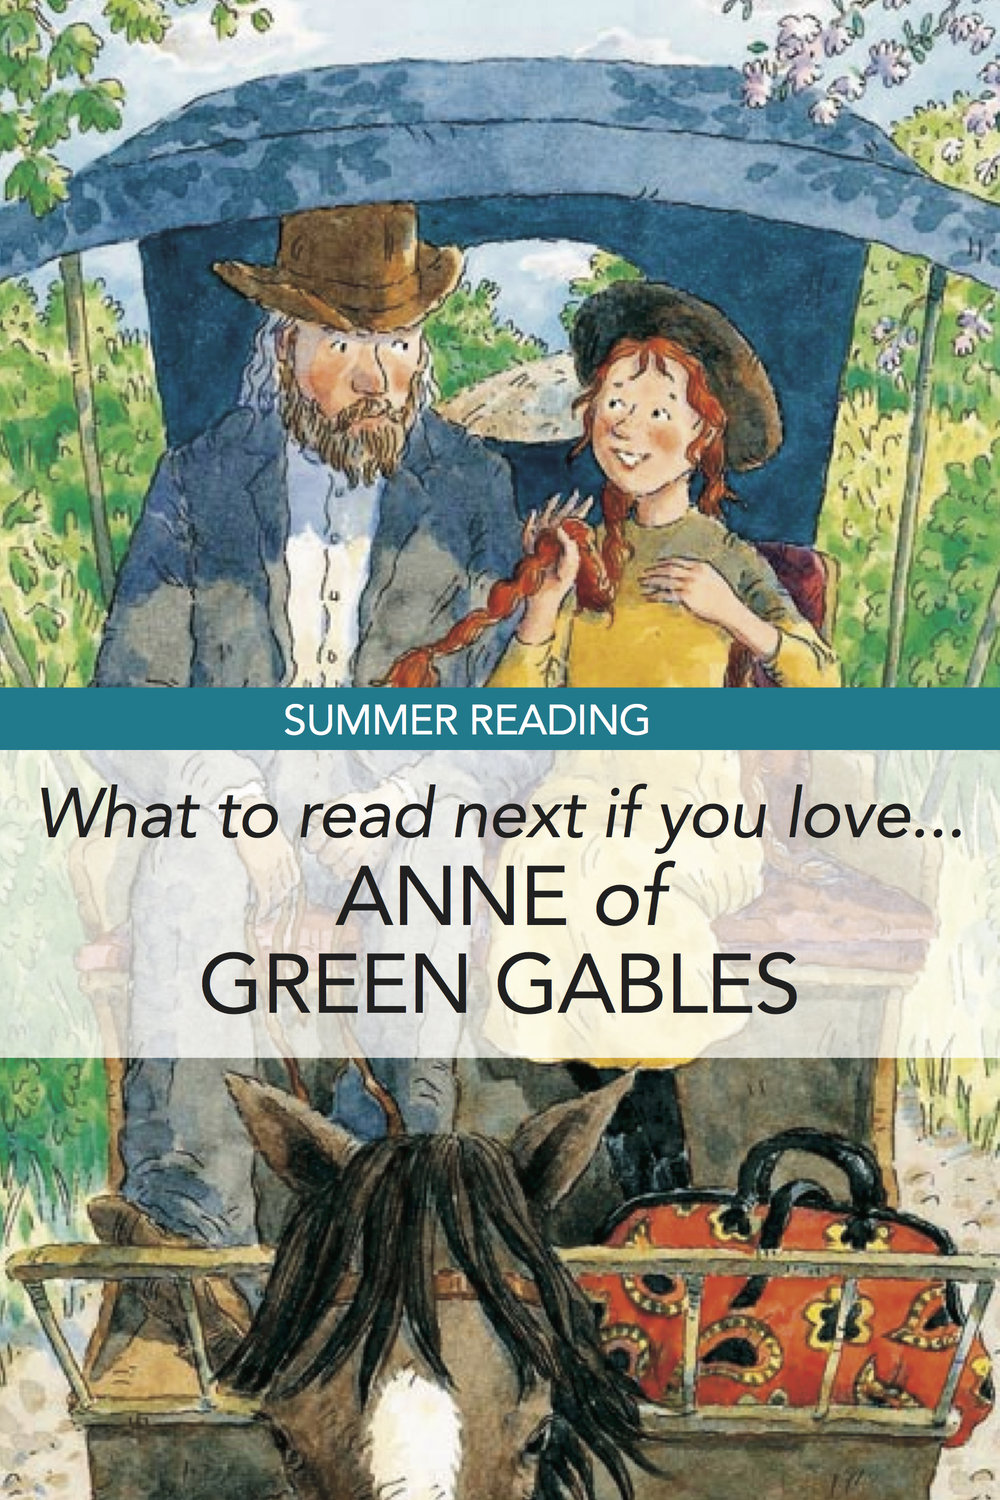 Summer Reading: If You Liked Anne of Green Gables